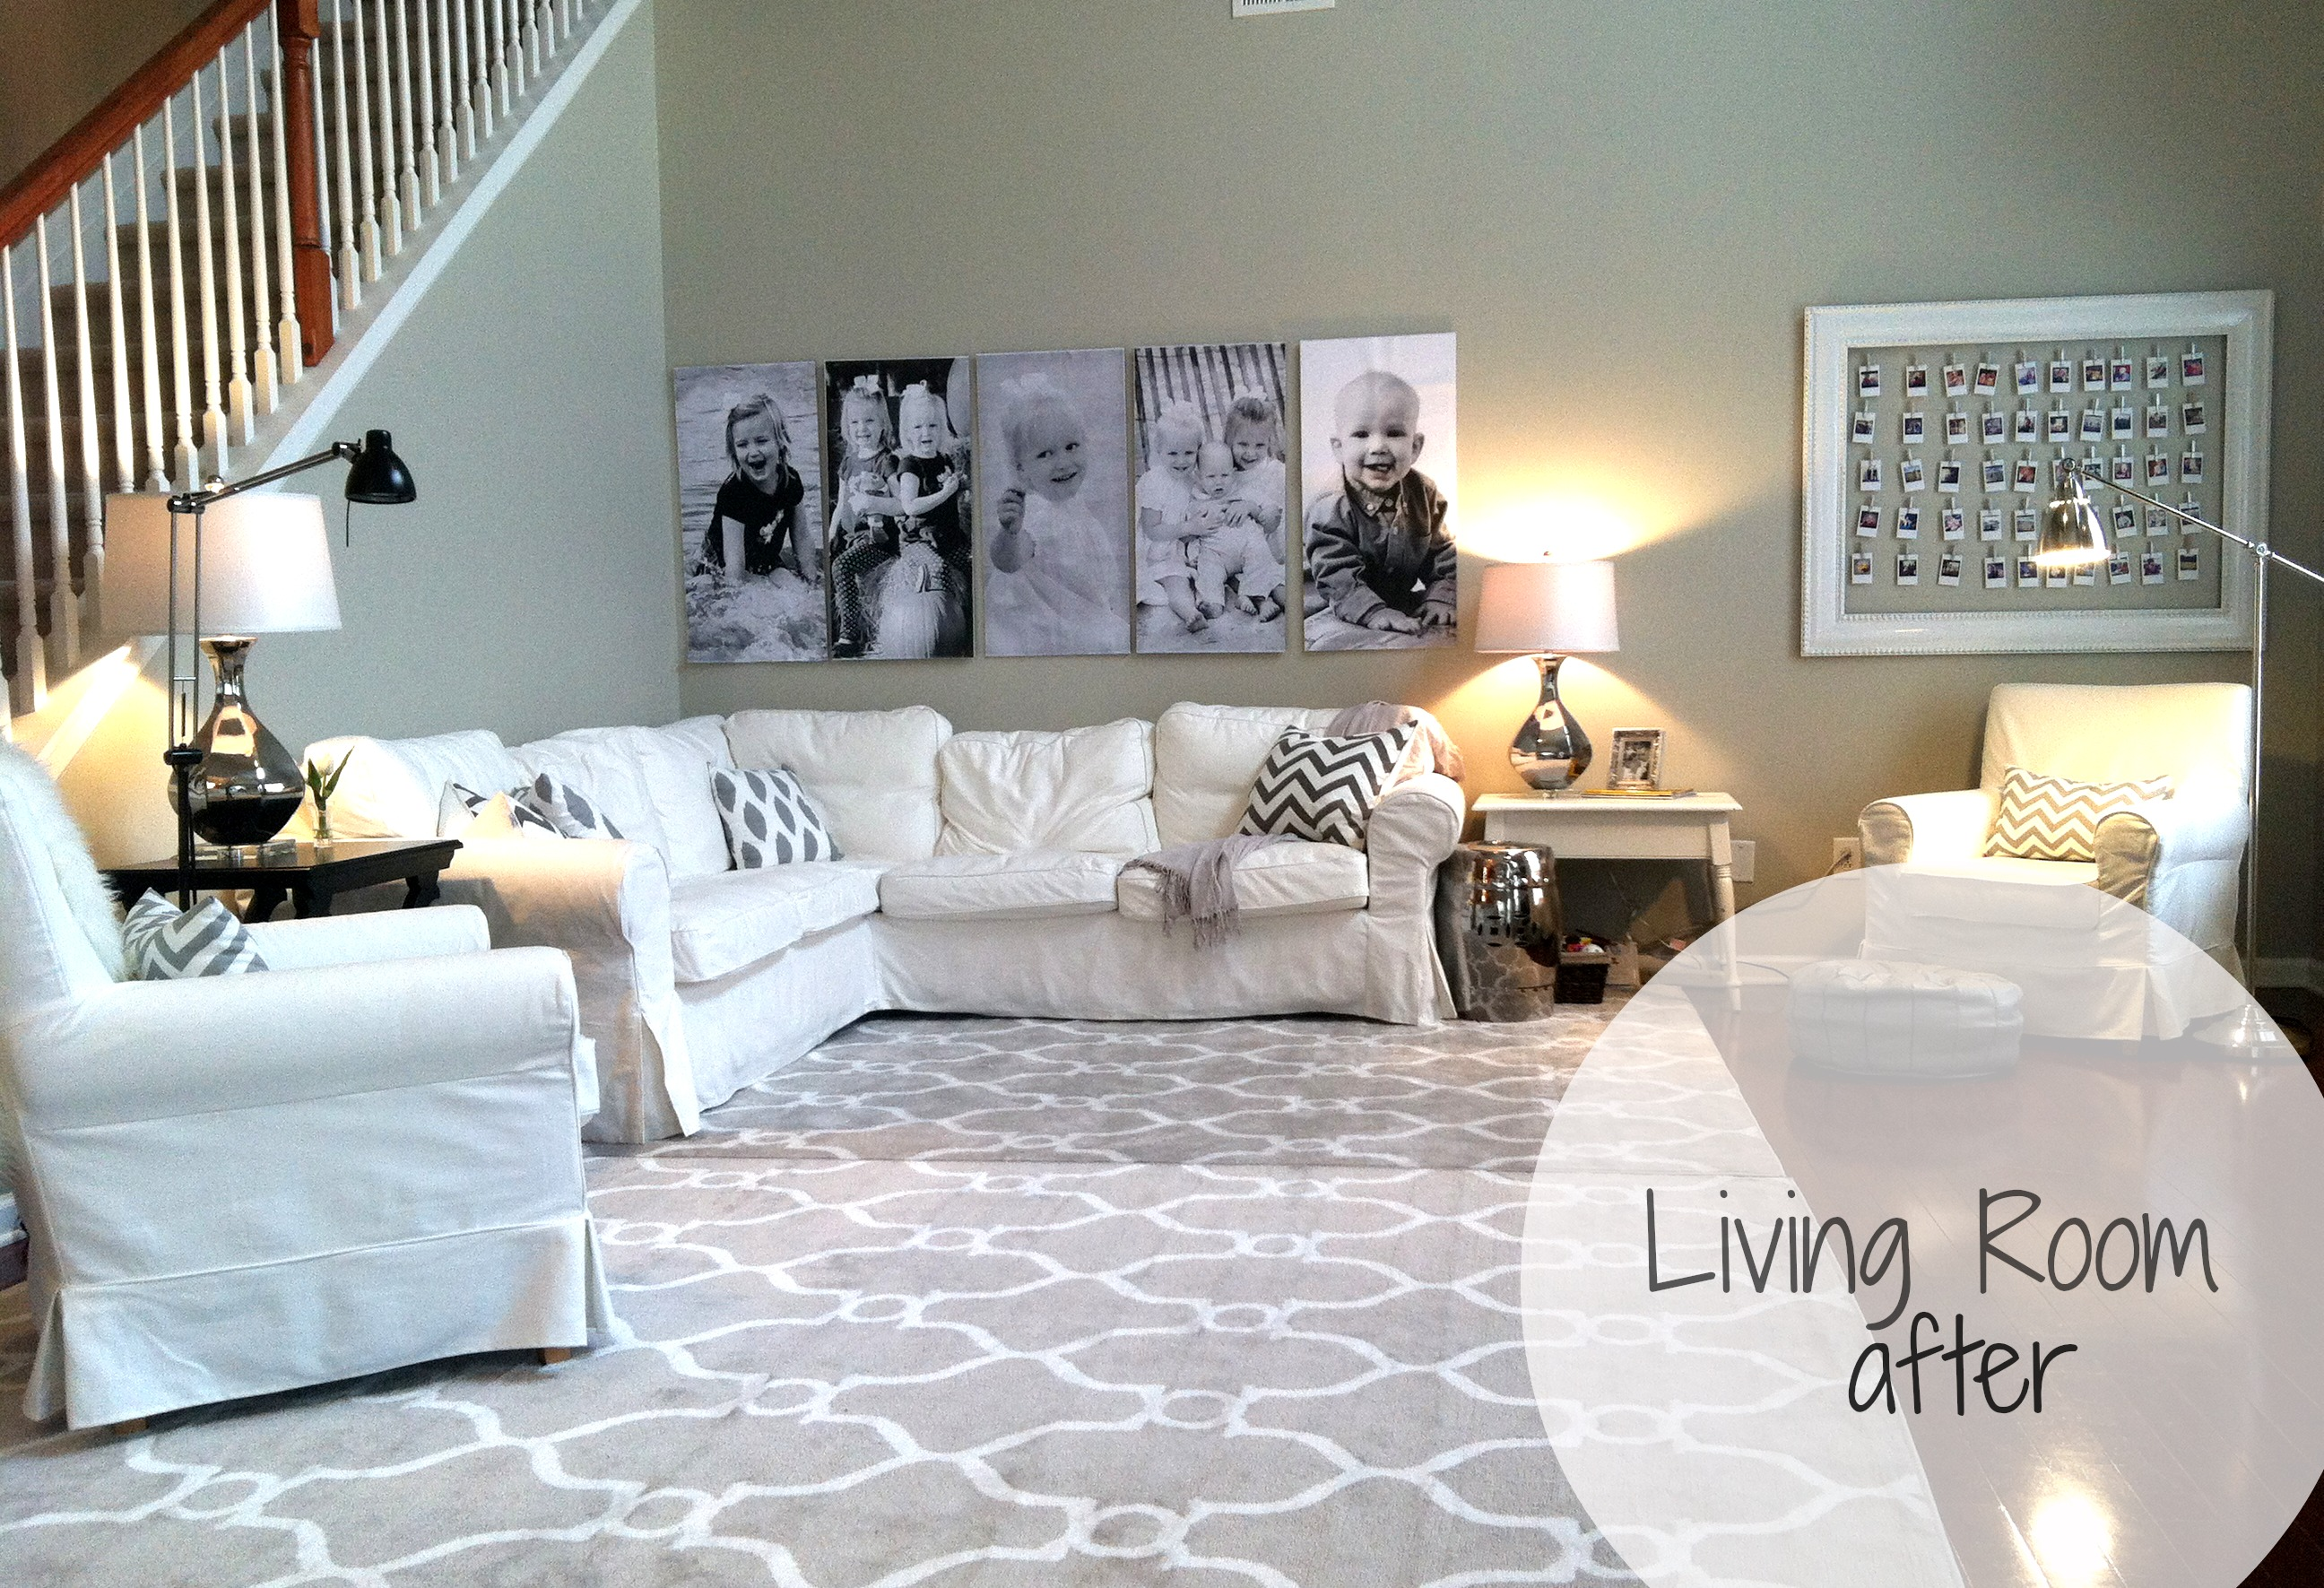 Pottery barn paint colors 2013 - The After